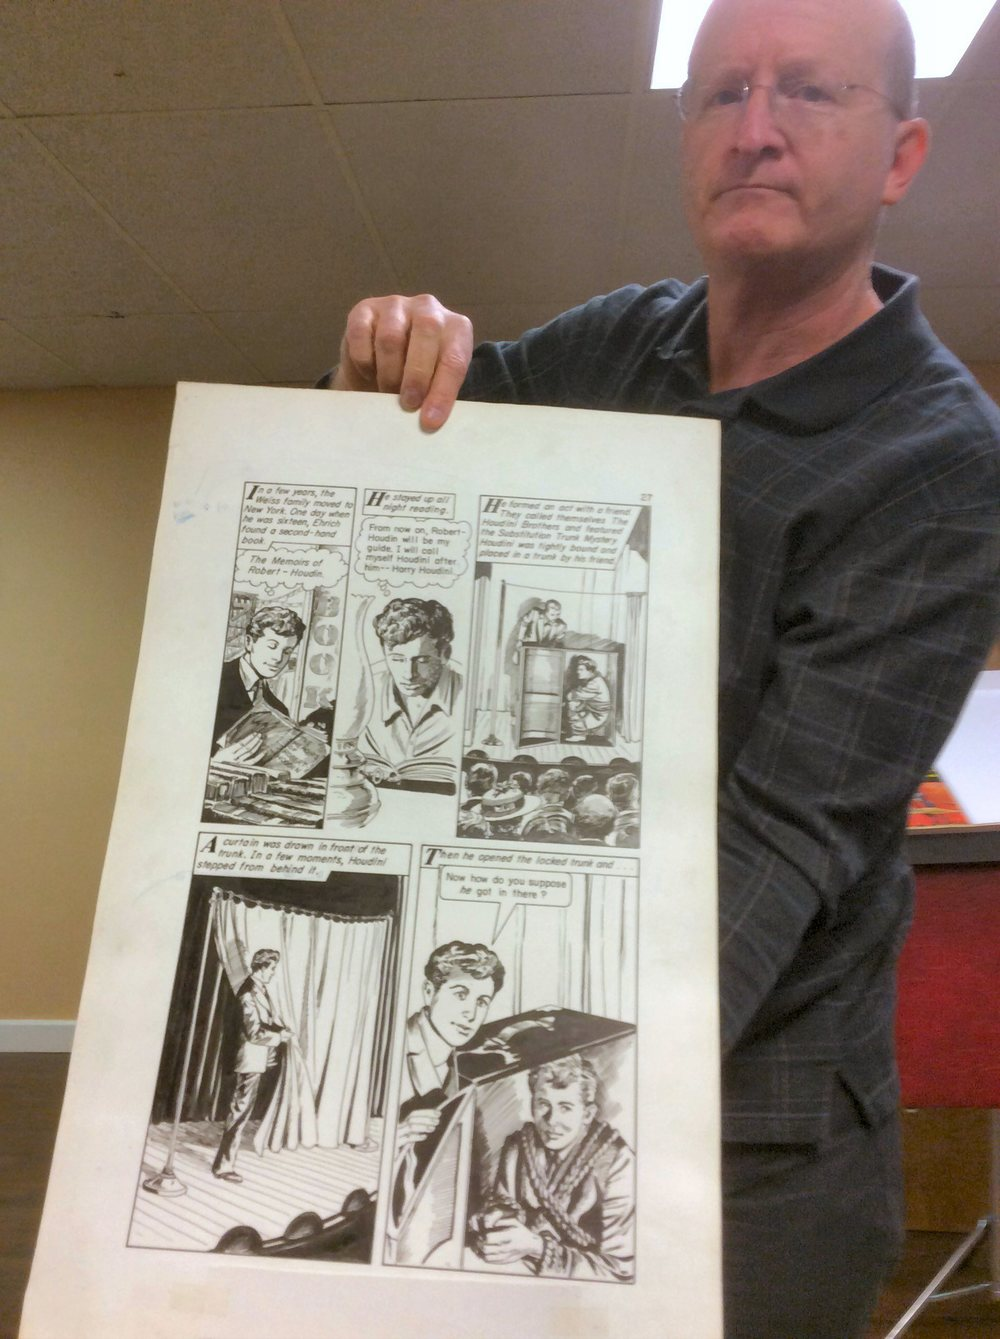 Displaying original artwork from graphic novel